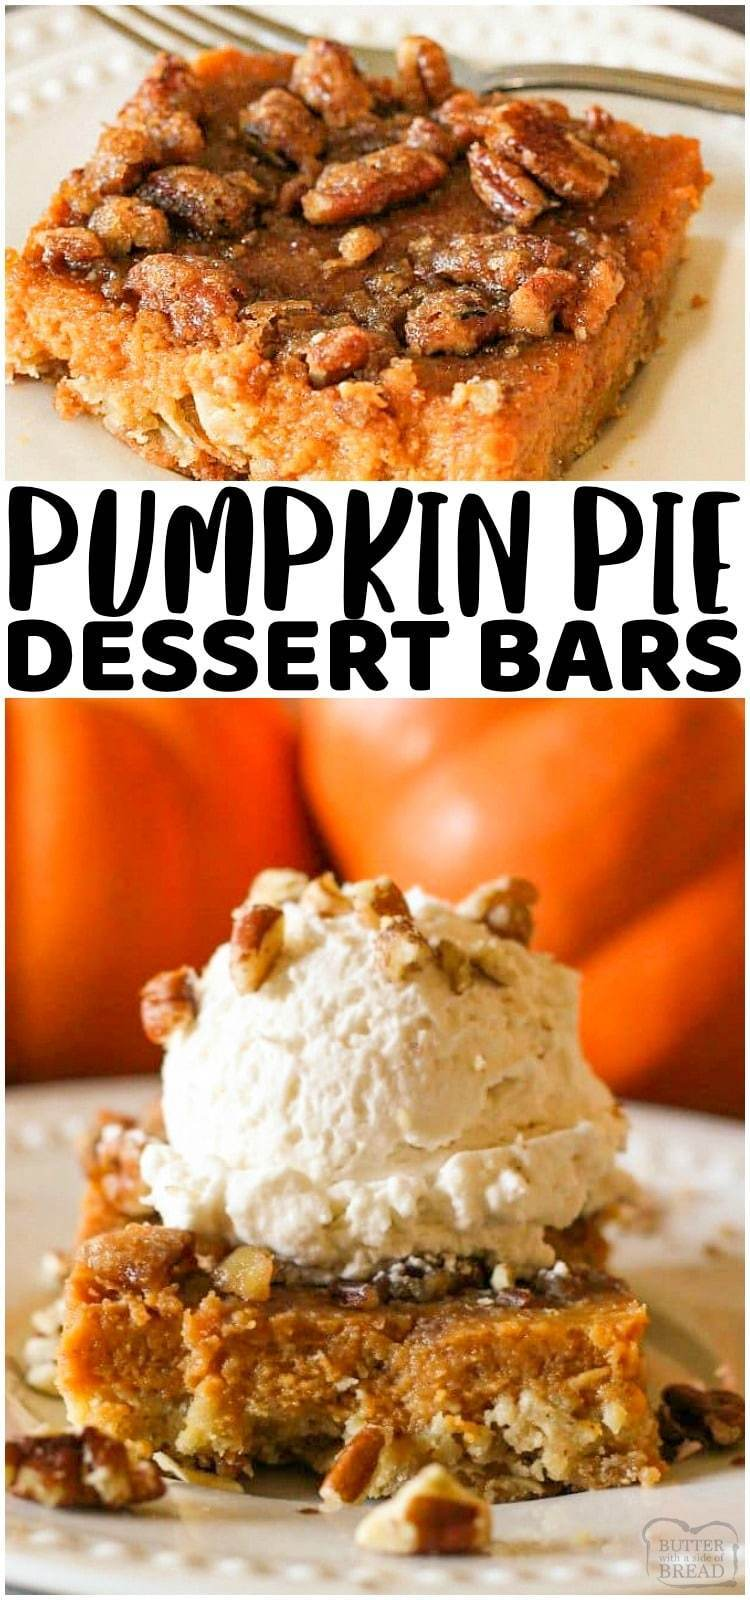 Pumpkin Pie Bars have a simple oat, butter crust with a traditional pumpkin pie filling topped with crunchy, sweet pecans. This bar version of the best pumpkin pie recipe is the perfect Thanksgiving Dessert for feeding a crowd and so much easier than making a pie! #pumpkinpiebars #oatmeal crust #pumpkinpiedessert